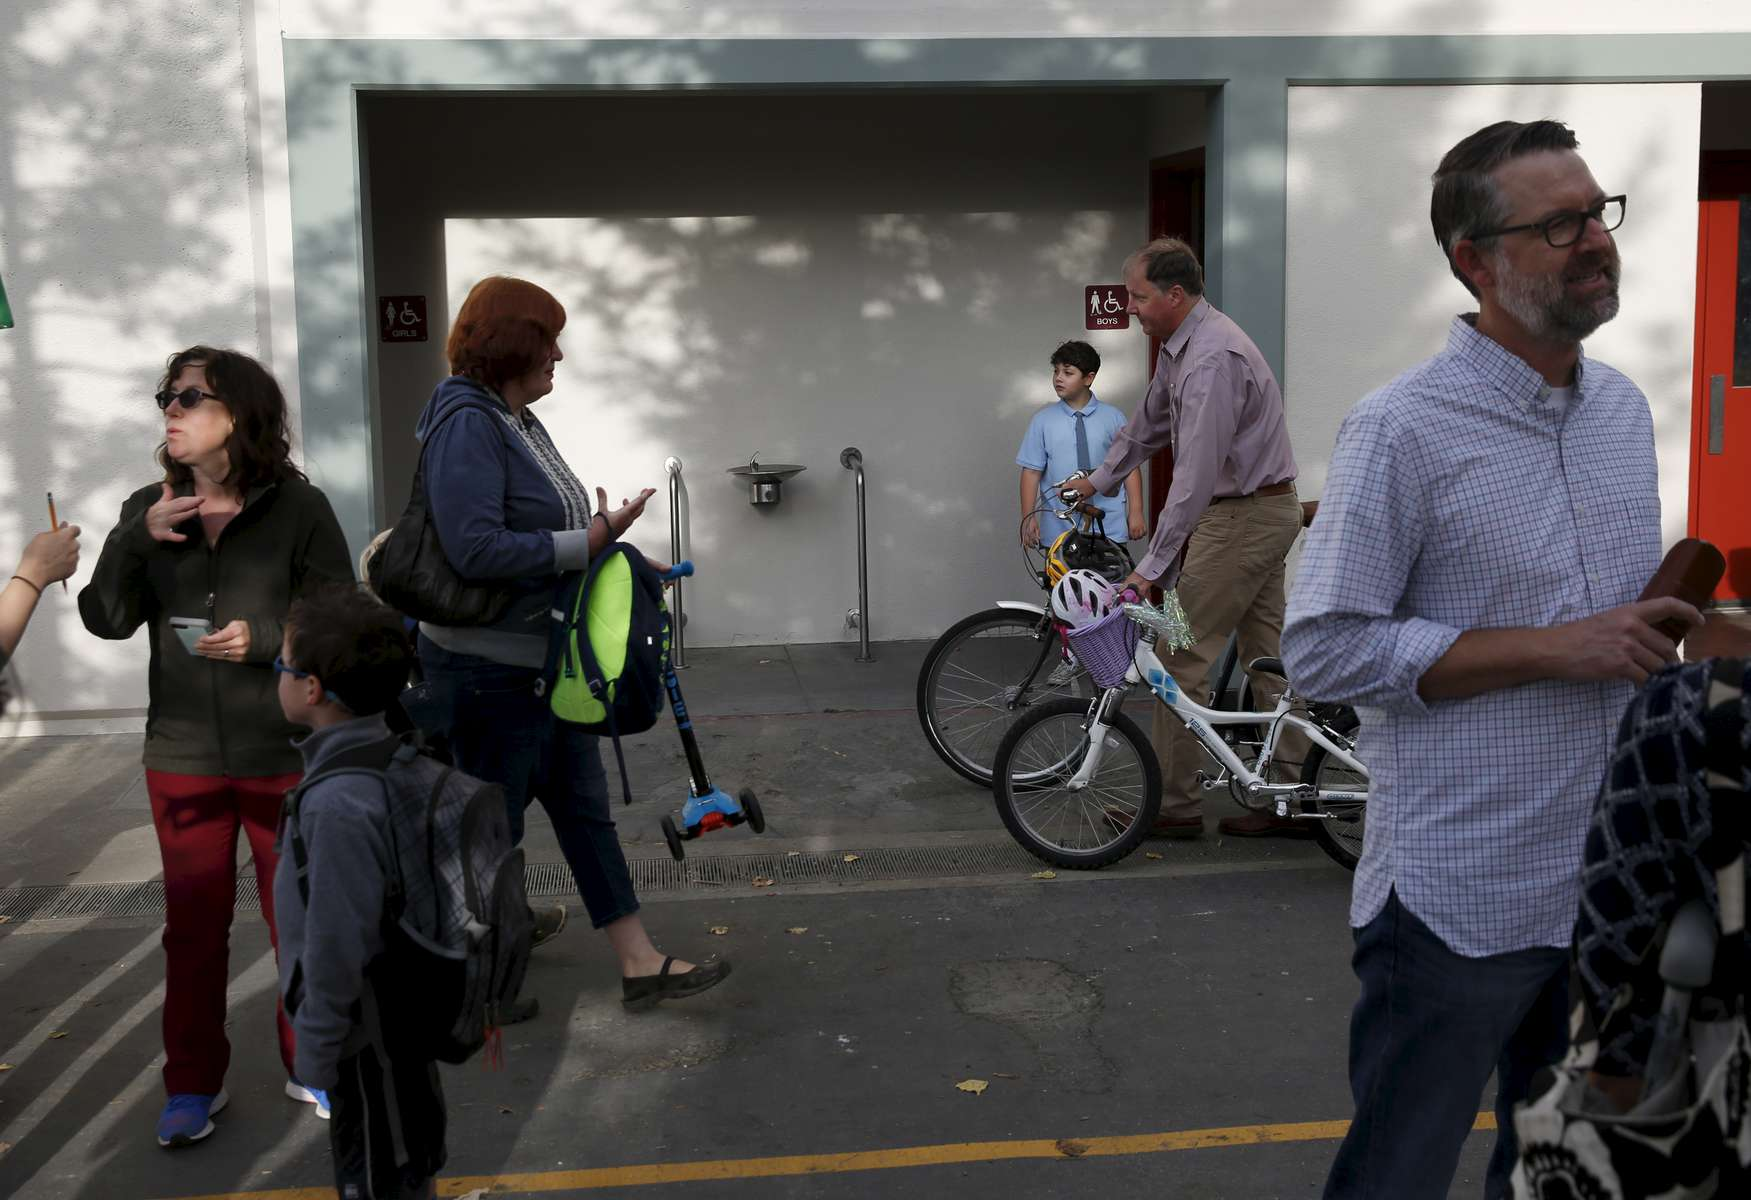 James Kaplan, 8, exits the boy's bathroom while waiting to leave for his first class on the first day of school August 30, 2016 at Malcom X Elementary School in Berkeley, Calif.